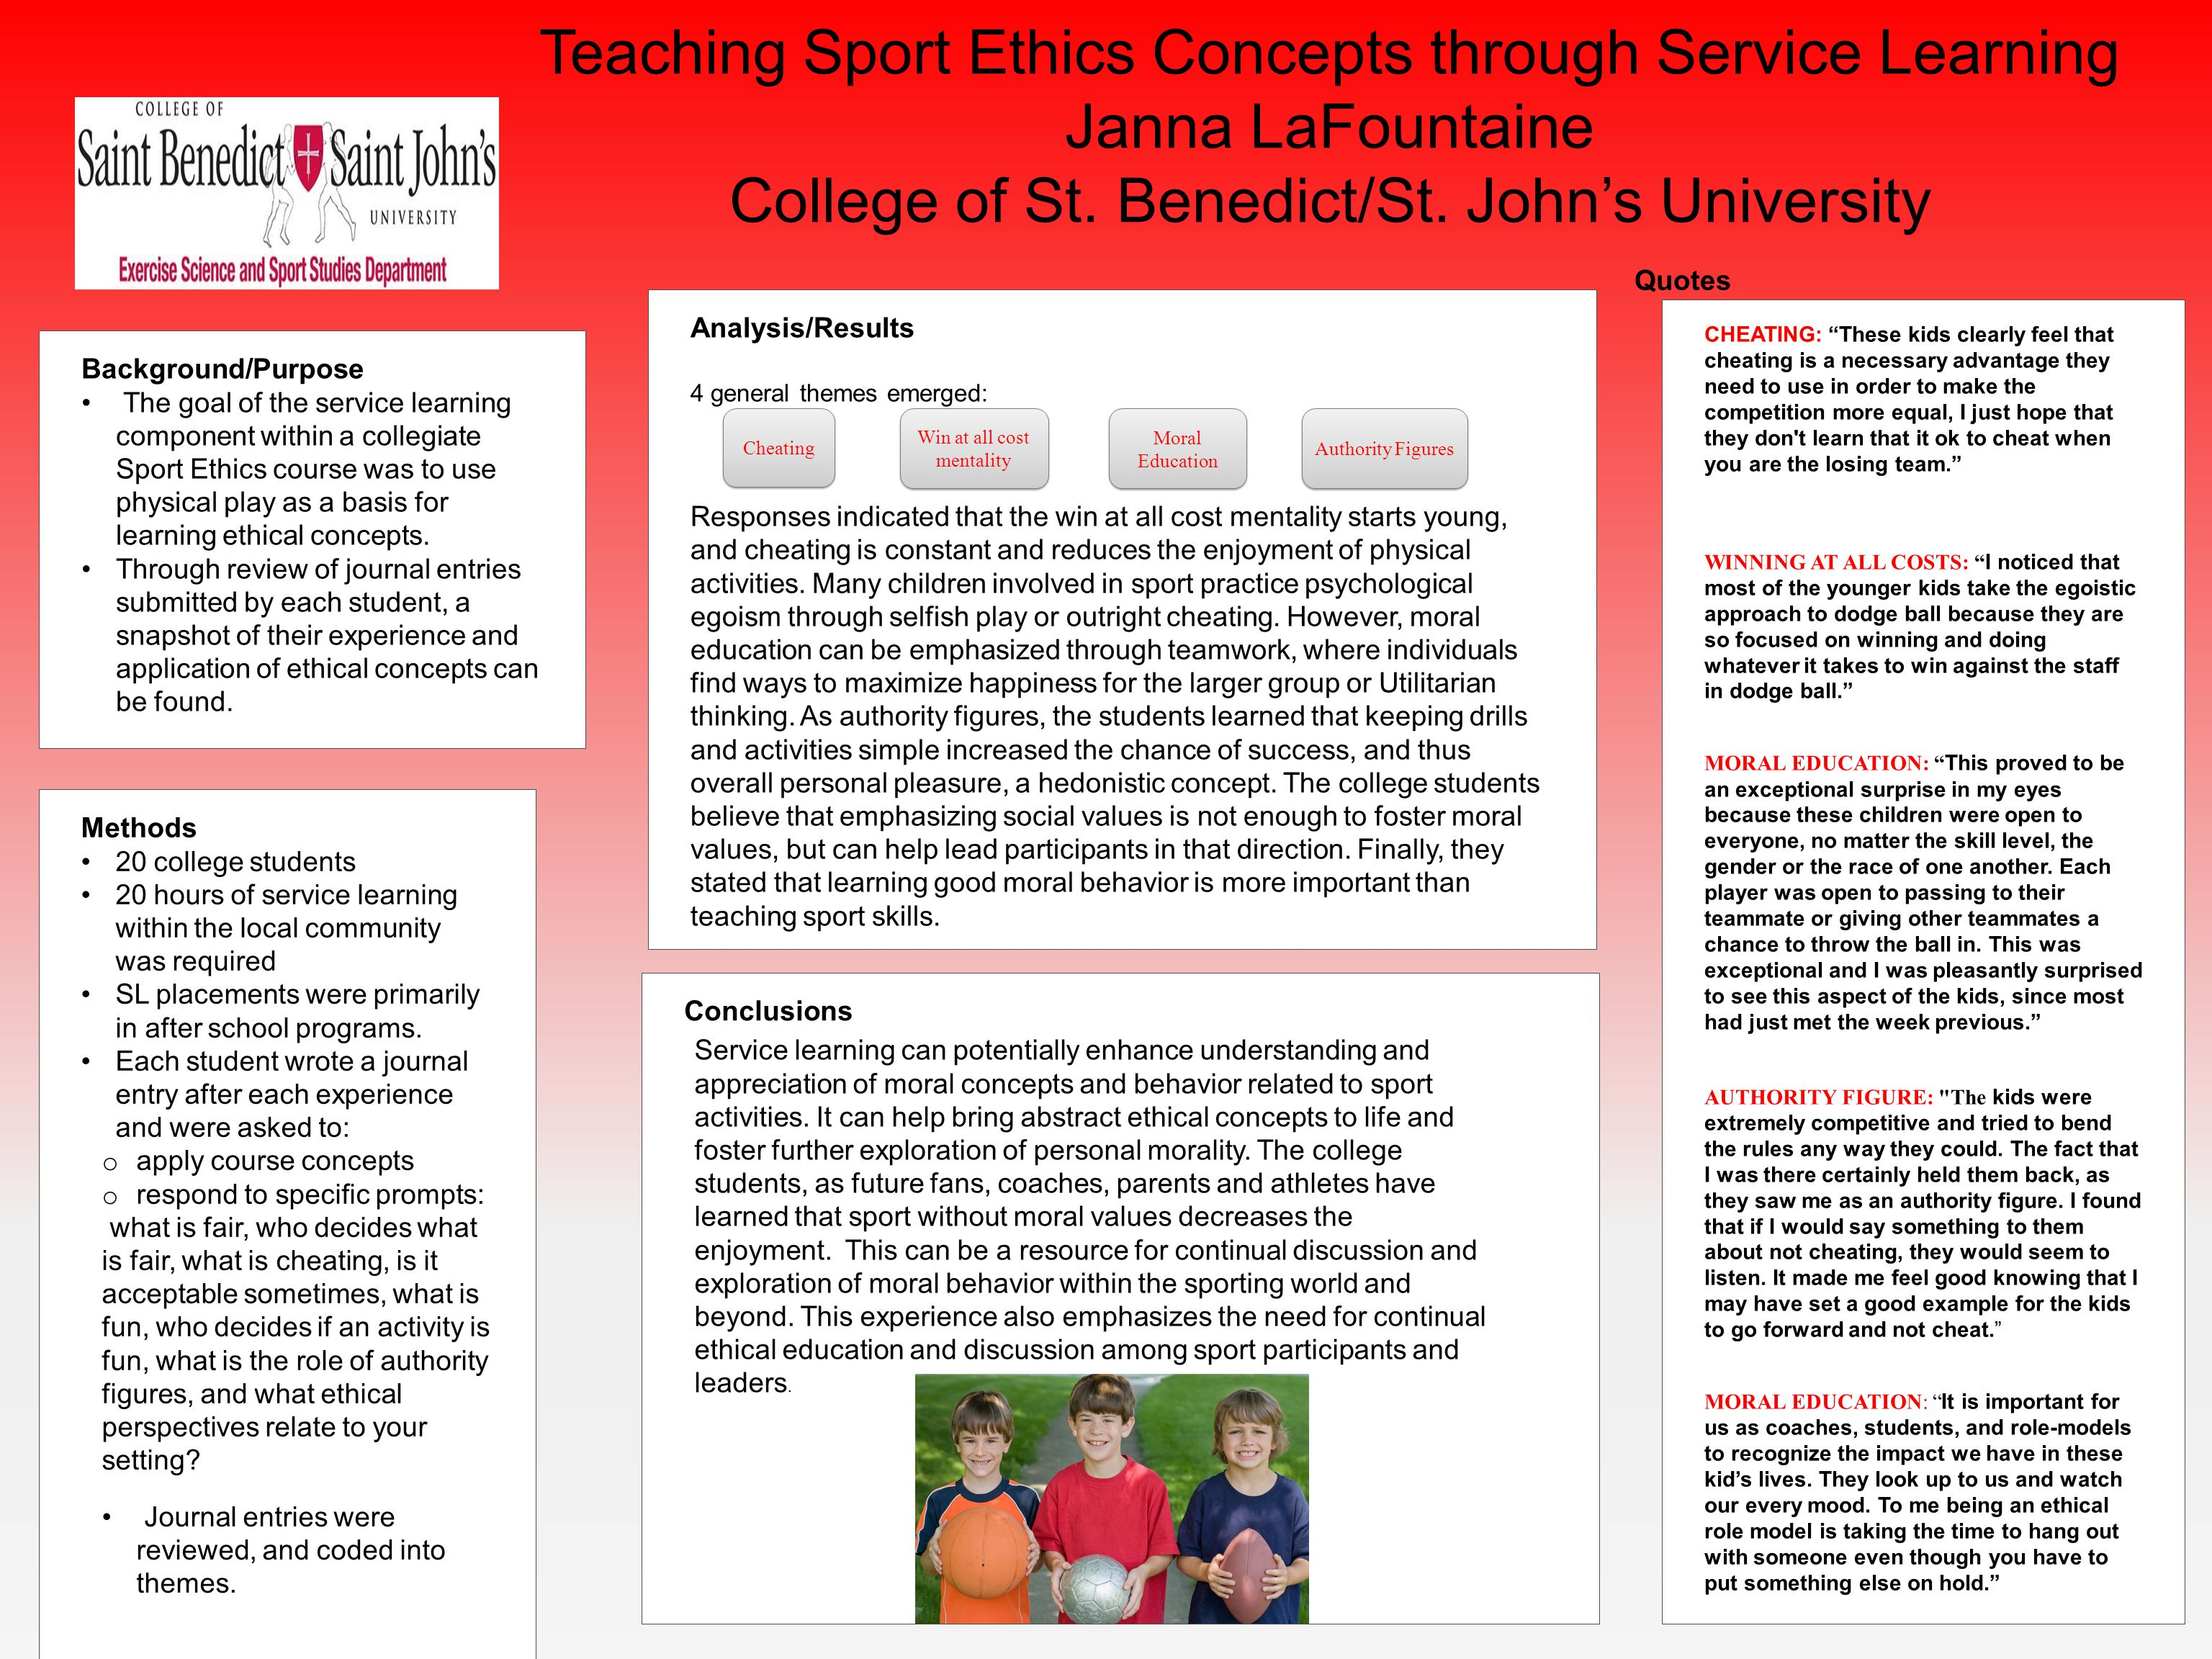 Background/Purpose The goal of the service learning component within a collegiate Sport Ethics course was to use physical play as a basis for learning ethical concepts.